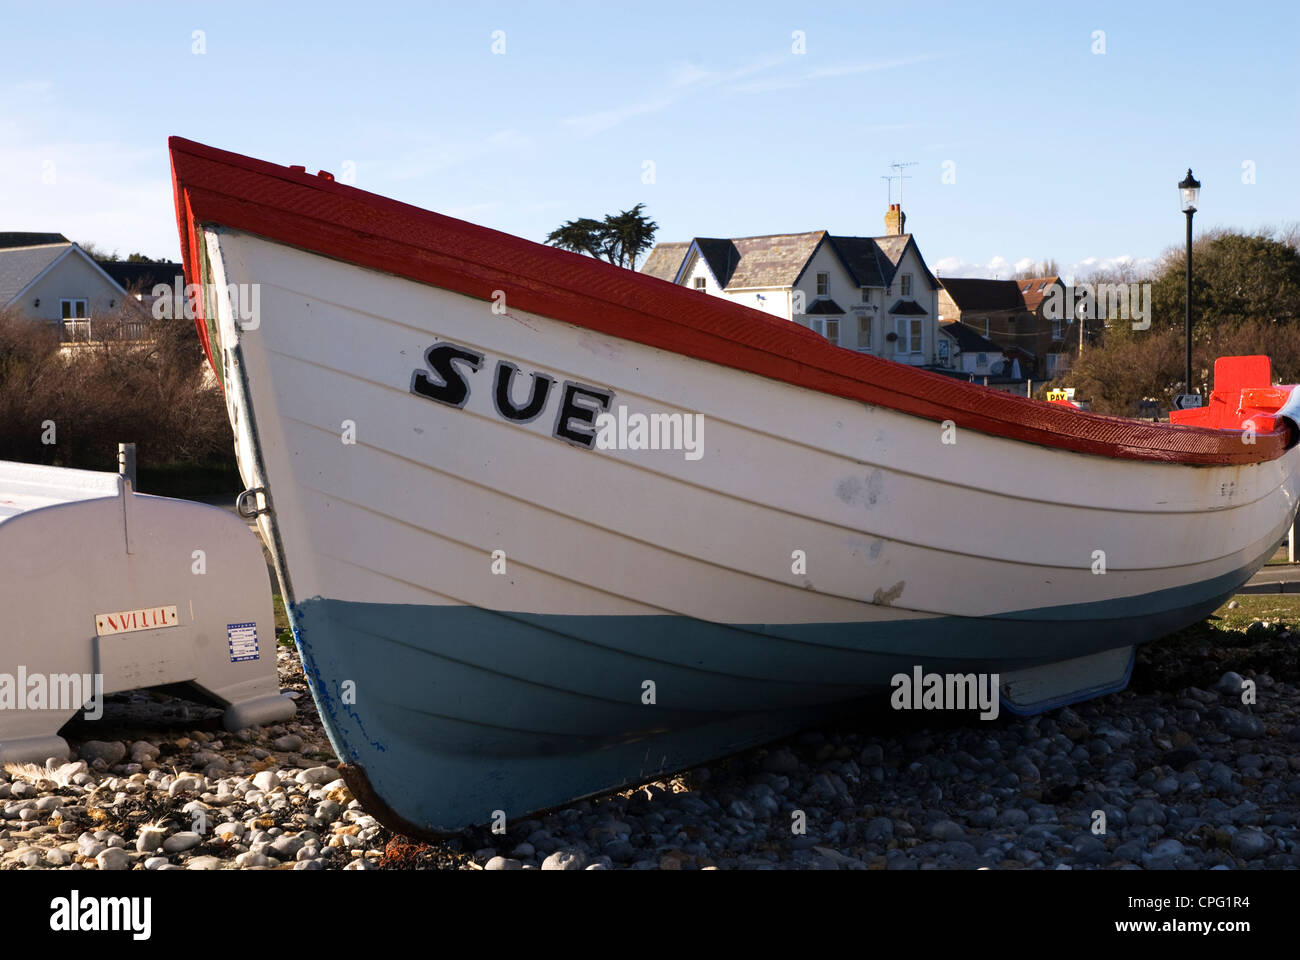 A small rowing boat named SUE on a pebble beach - Stock Image